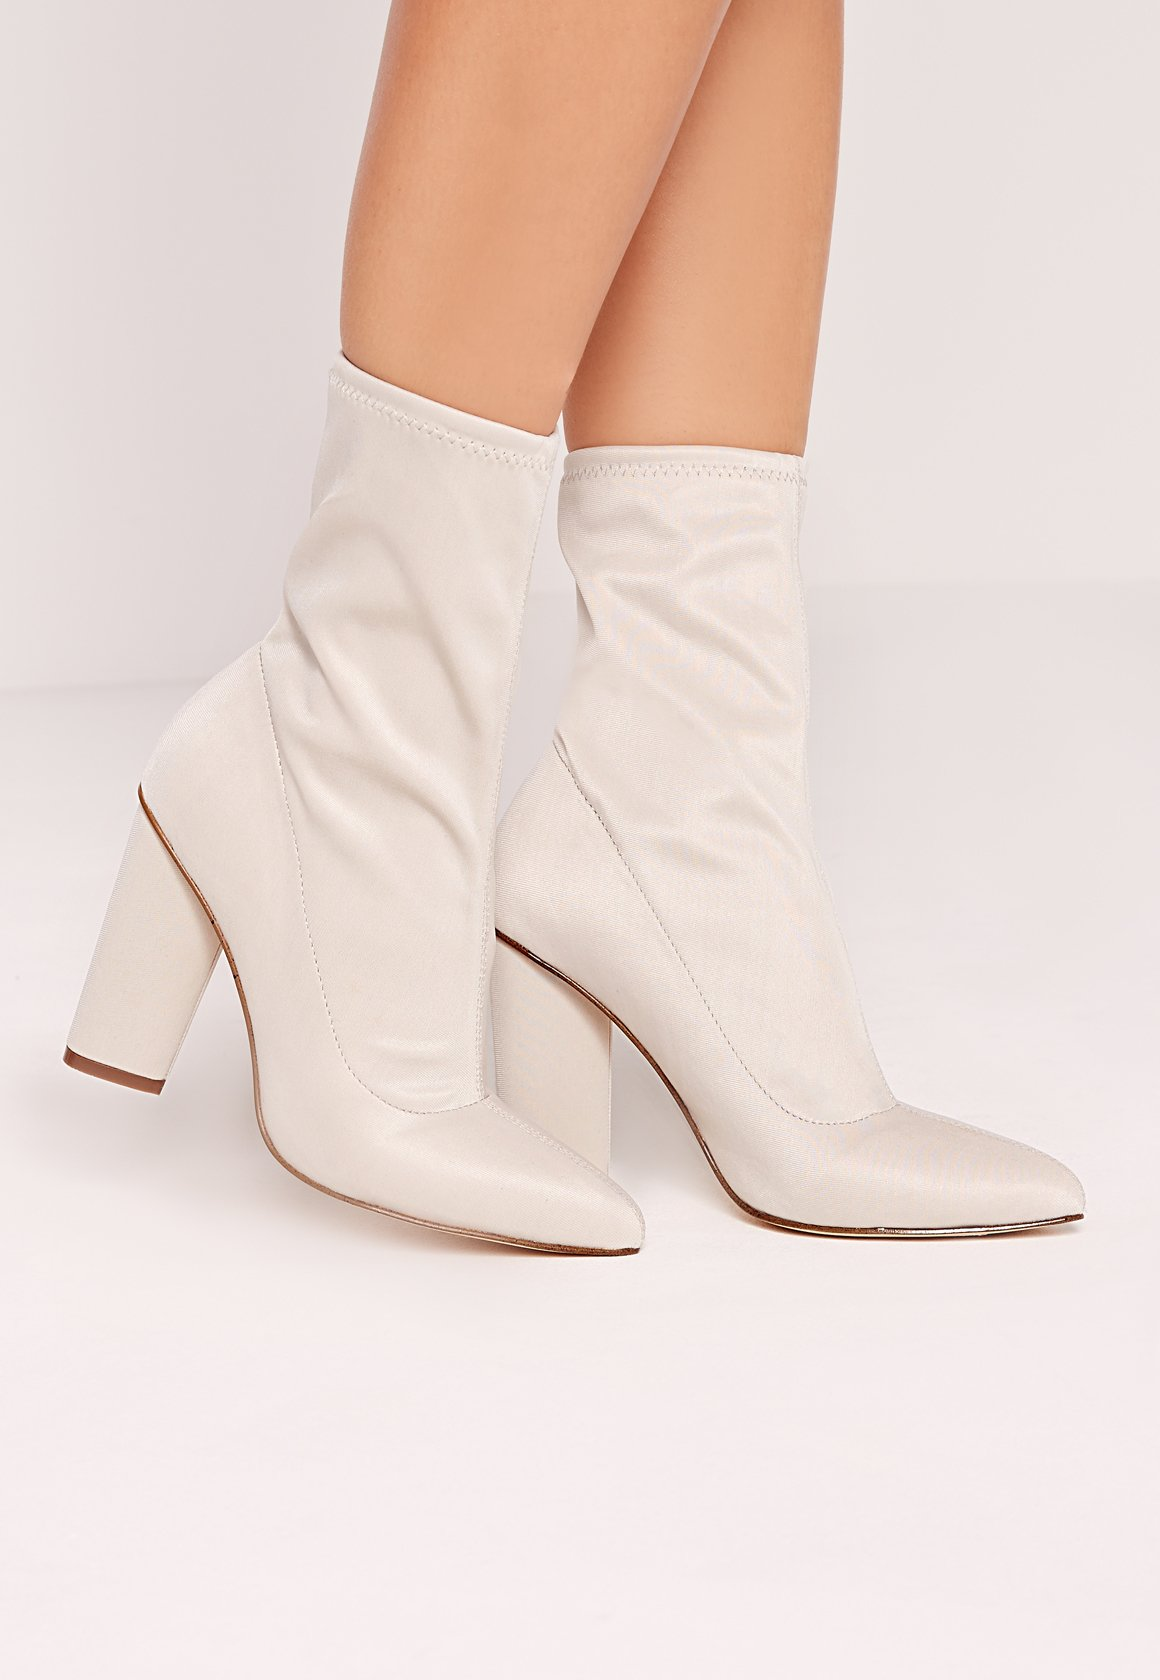 missguided pointed toe neoprene heeled ankle boots cream. Black Bedroom Furniture Sets. Home Design Ideas